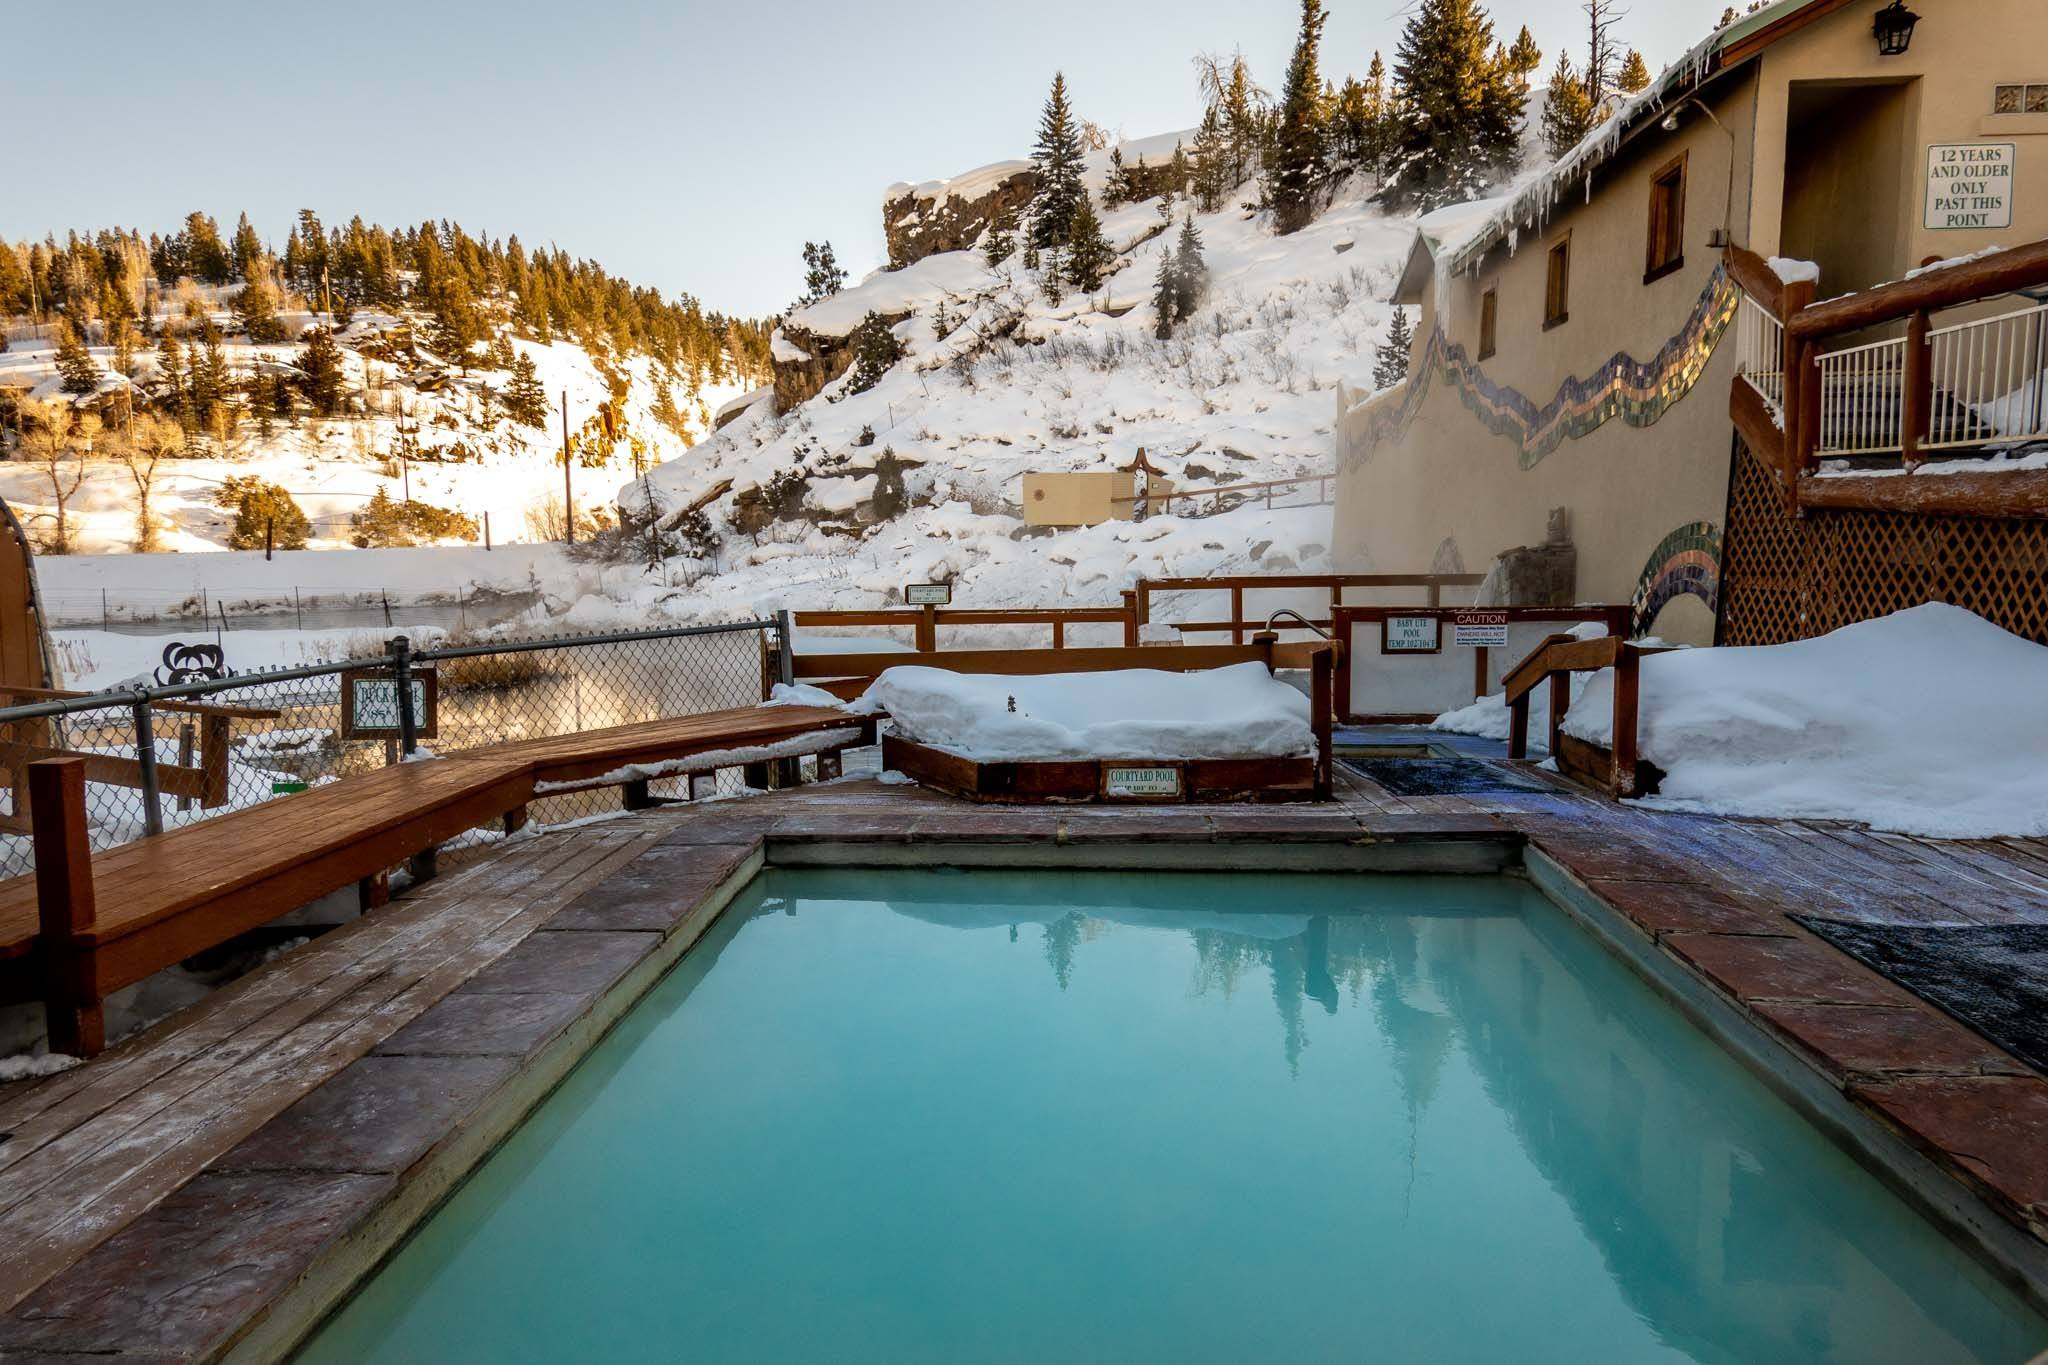 Outdoor pool in the winter with snow